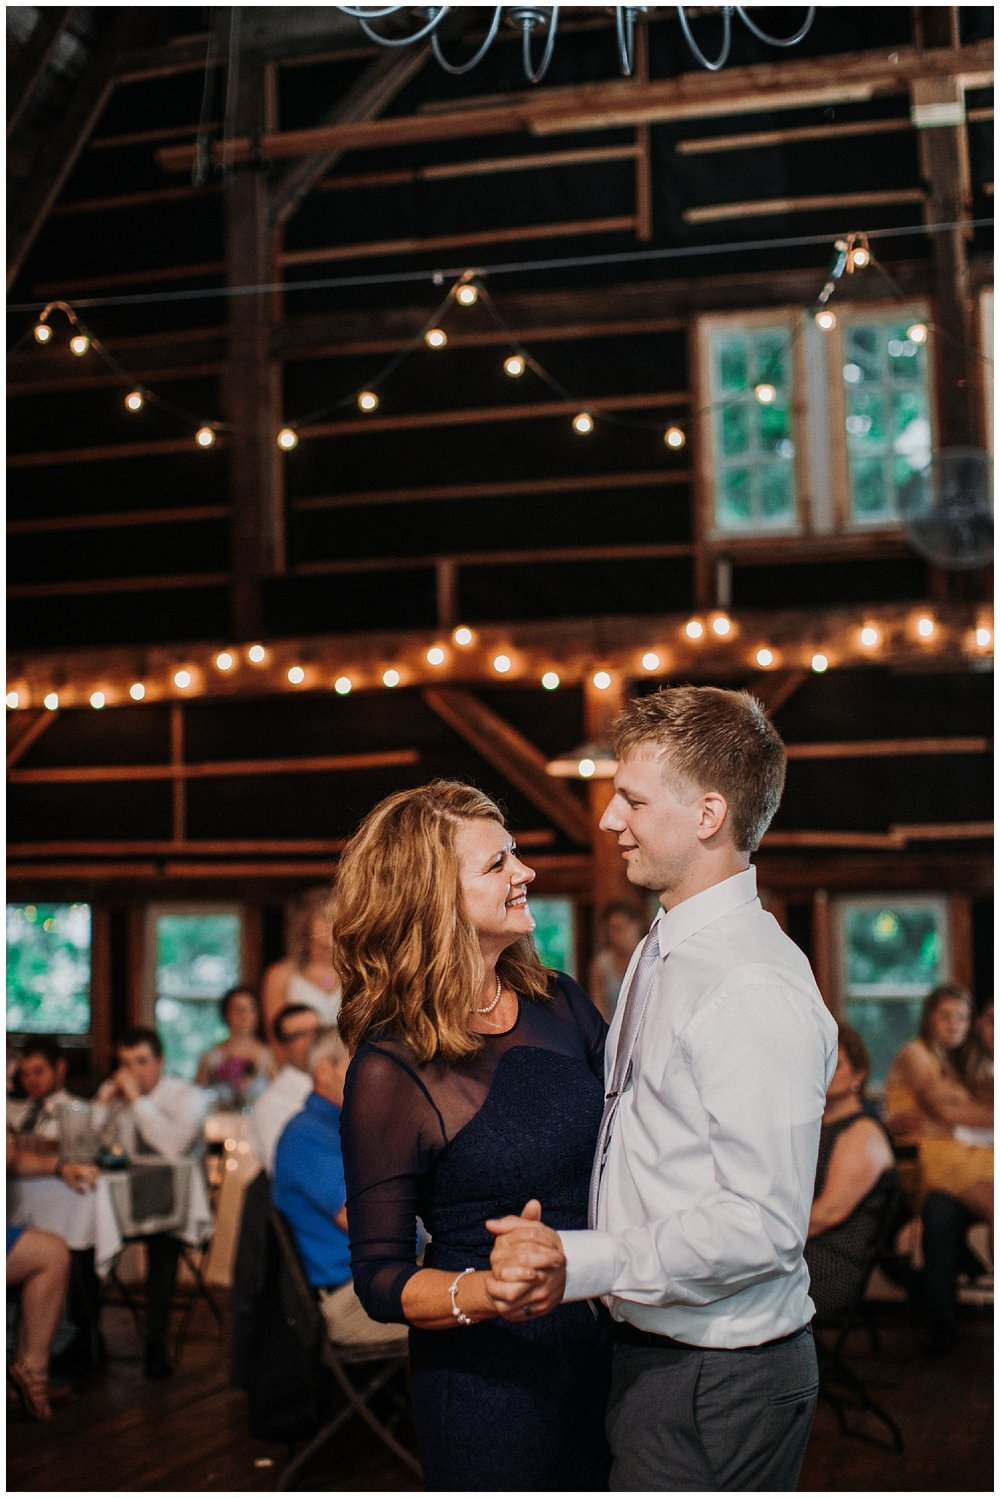 lindybeth photography - persenaire wedding - the old wooden barn-225.jpg